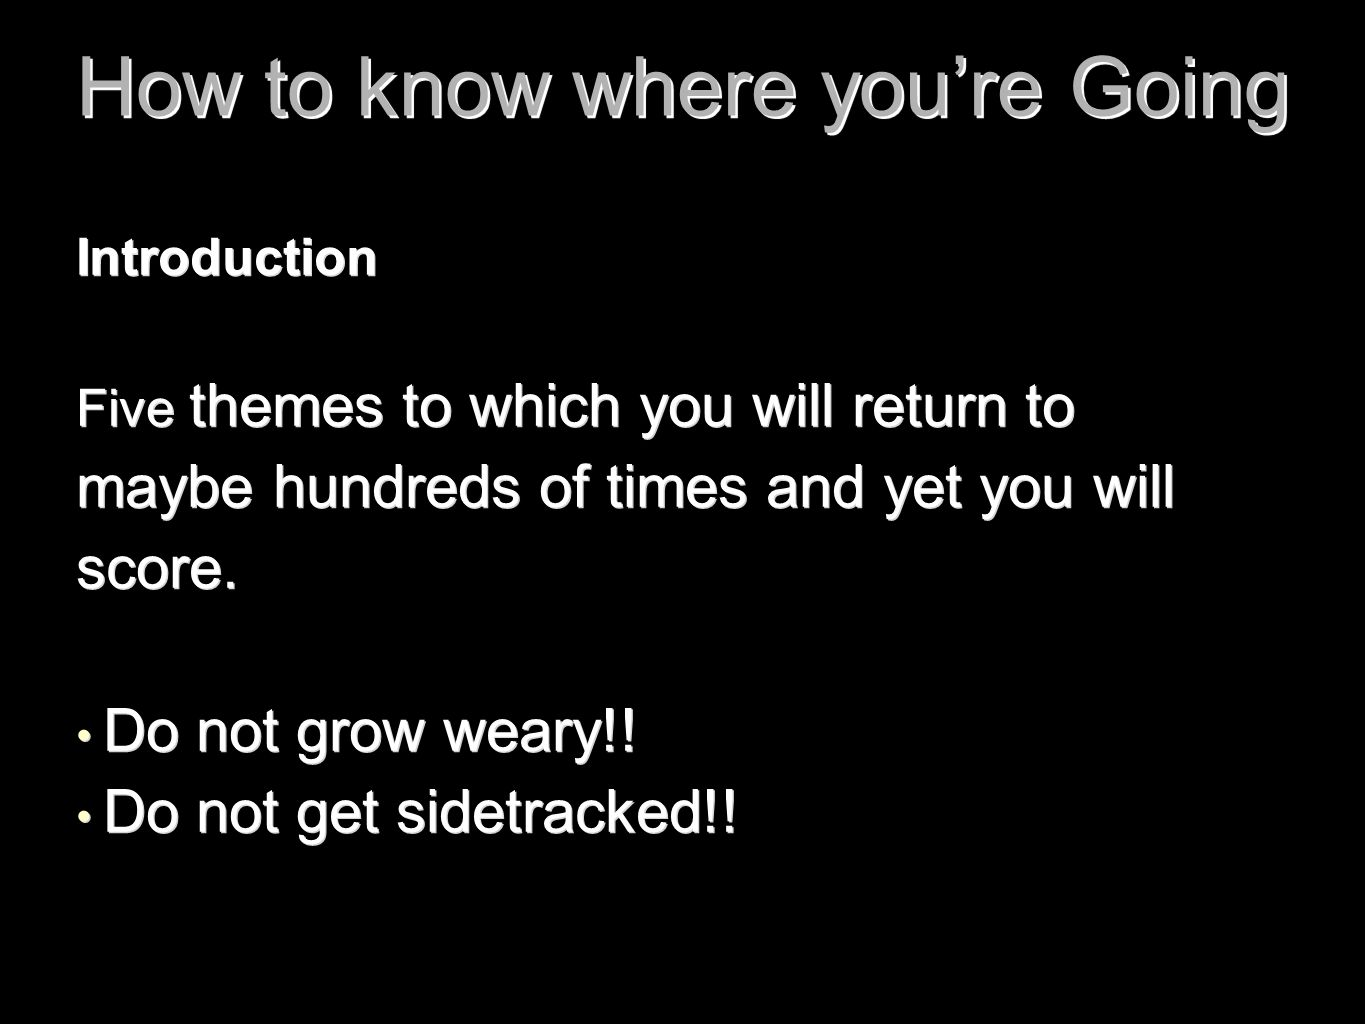 How to know where you're Going Introduction Five themes to which you will return to maybe hundreds of times and yet you will score. Do not grow weary!